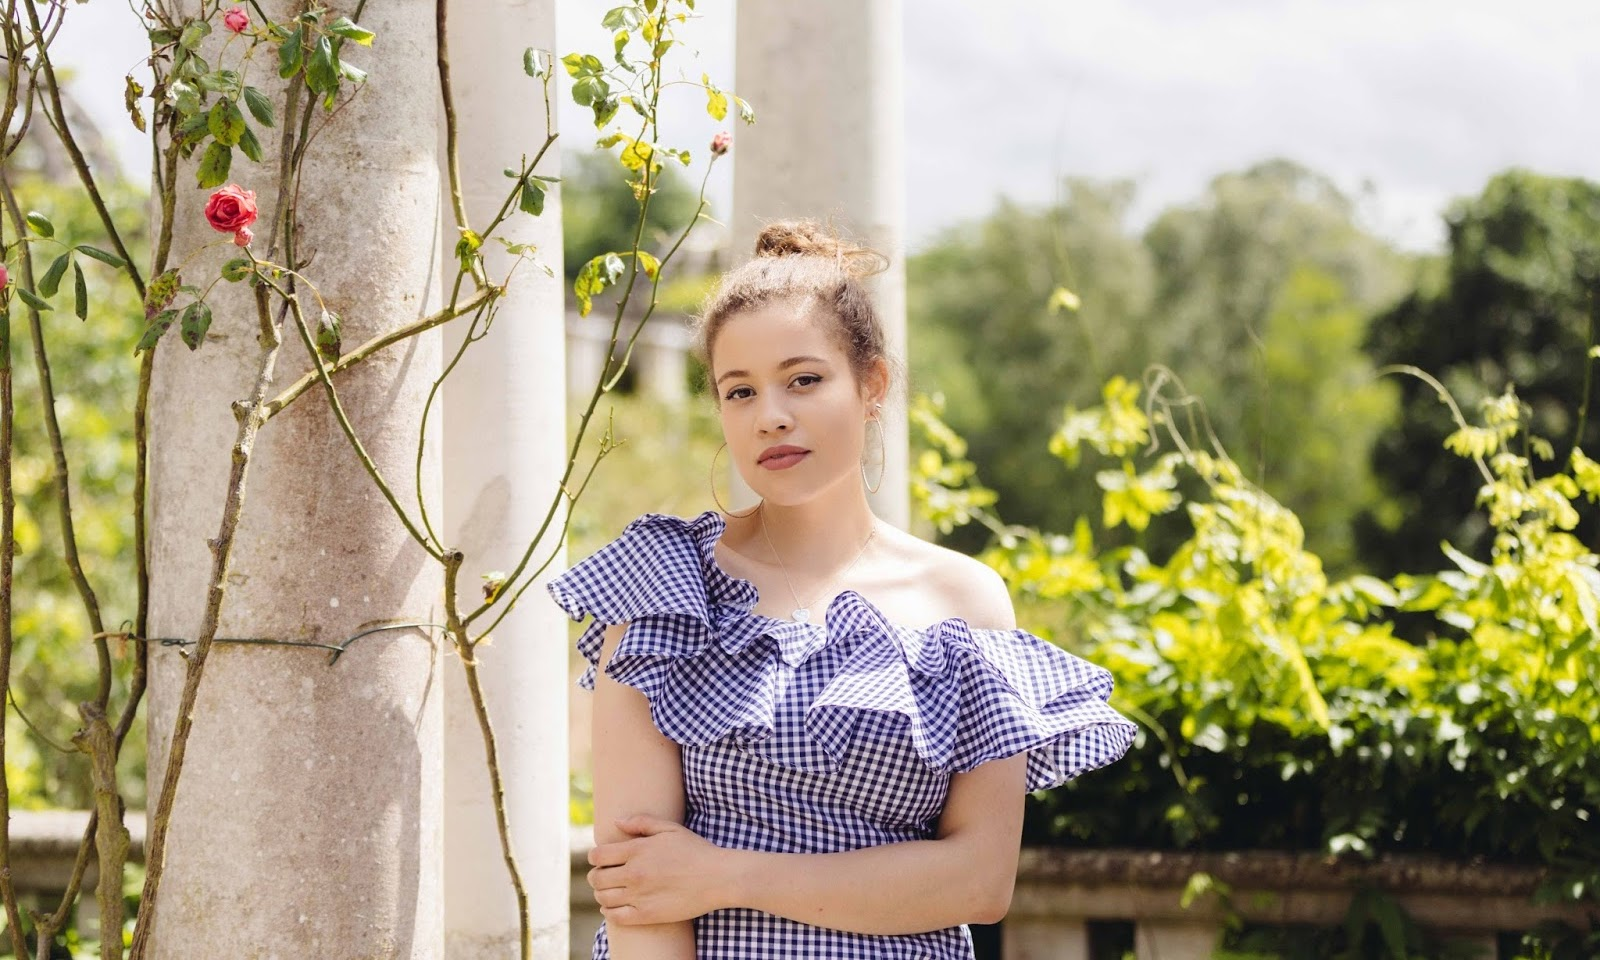 THE Gingham Dress of the Summer!